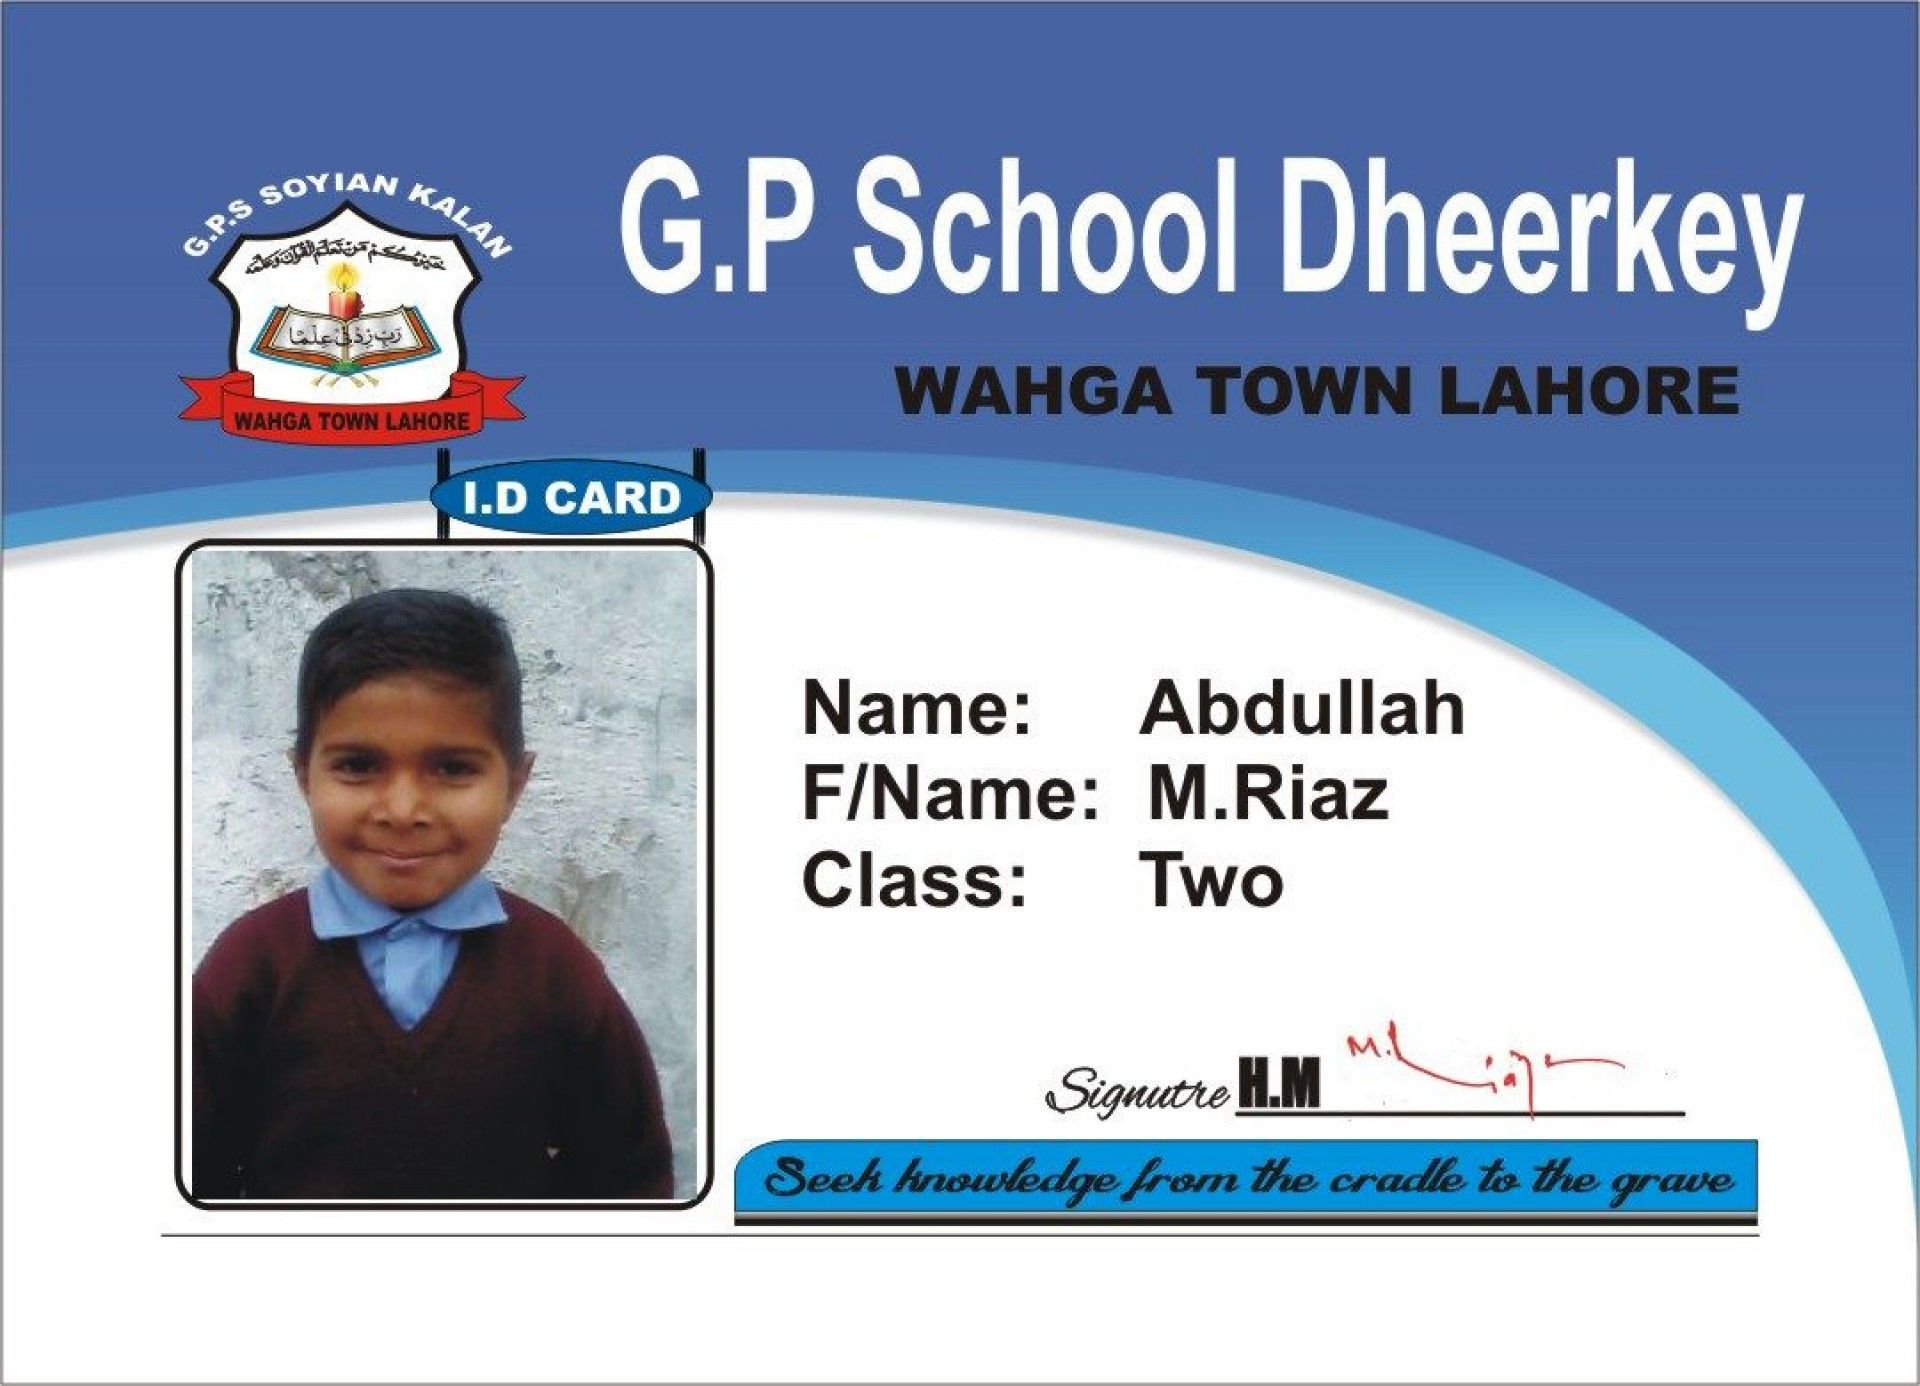 008 Wonderful Student Id Card Template Idea  Psd Free School Microsoft Word Download1920